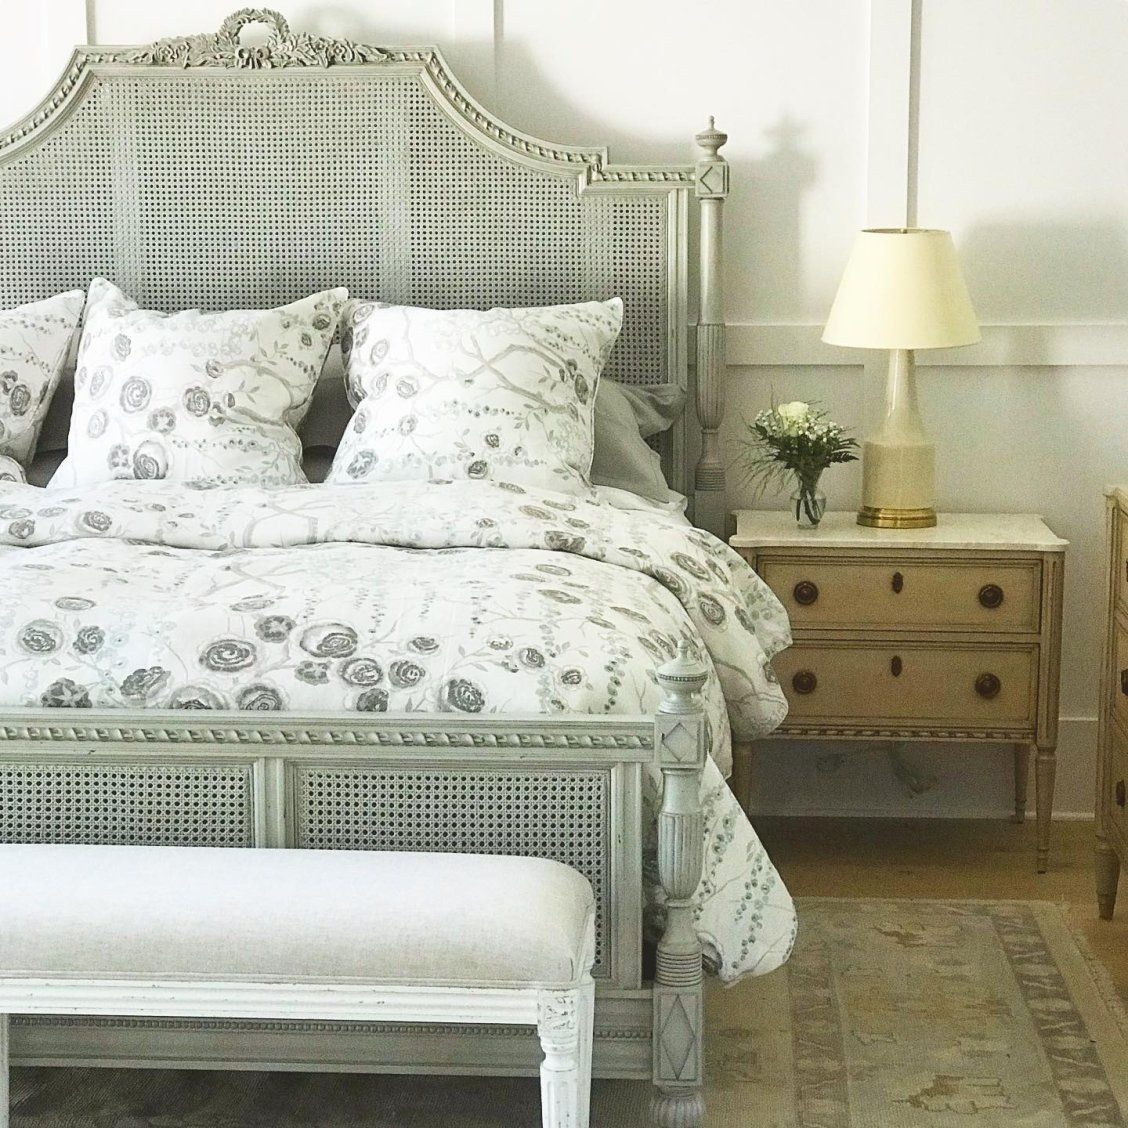 Beauvier French Cane Bed Cane bed, Bed, Interior design